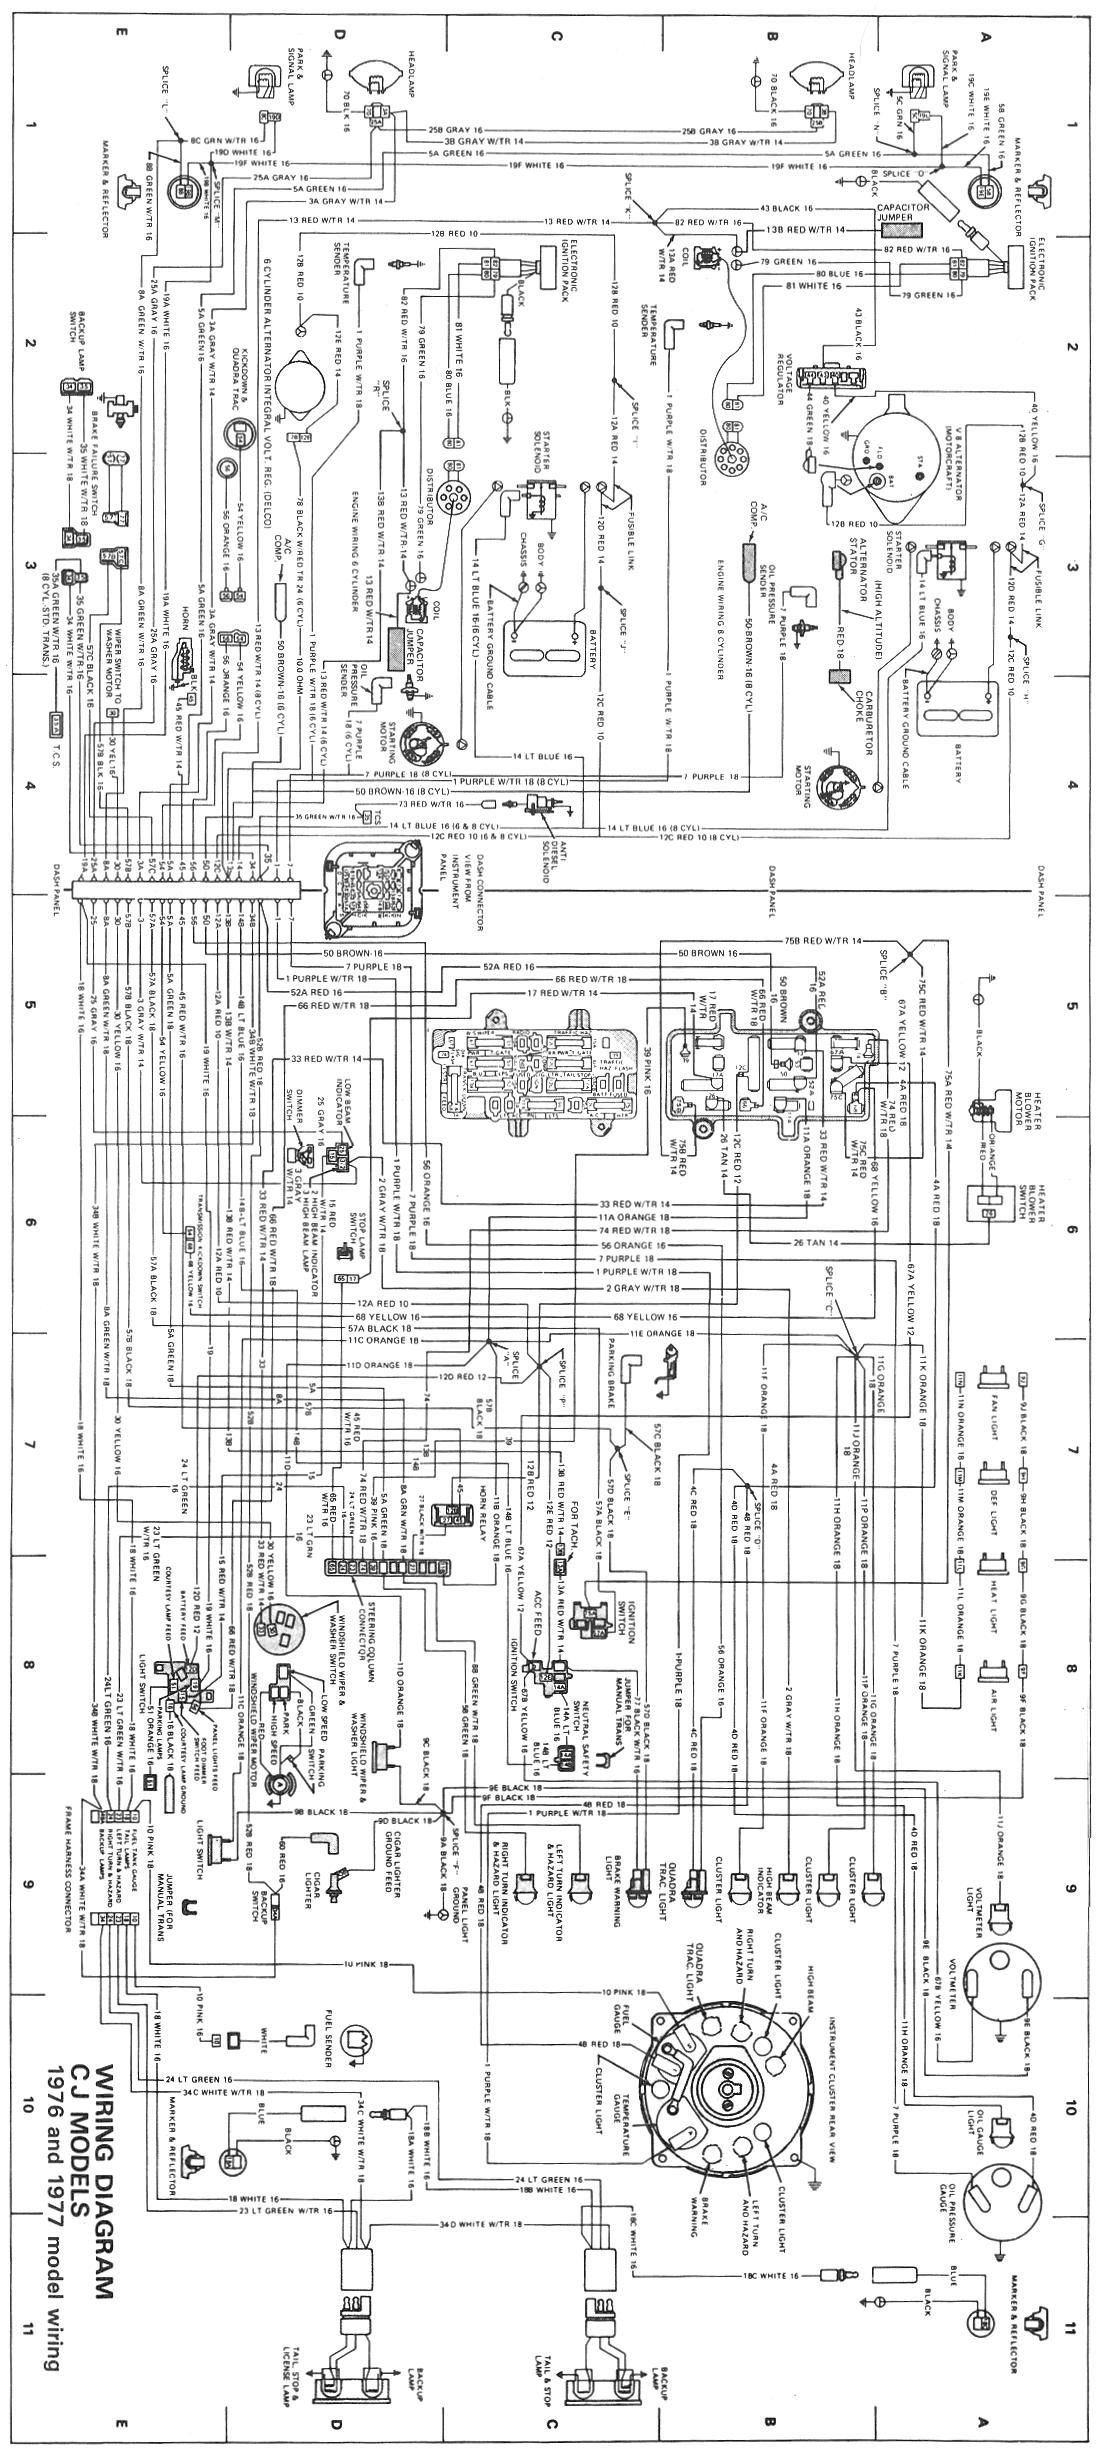 8d25ded6e3673519e155875e09844e5e cj wiring diagram 1976 1977 jpg 1,100�2,459 pixels 1976 jeep cj5 Painless Wiring Harness Diagram at metegol.co